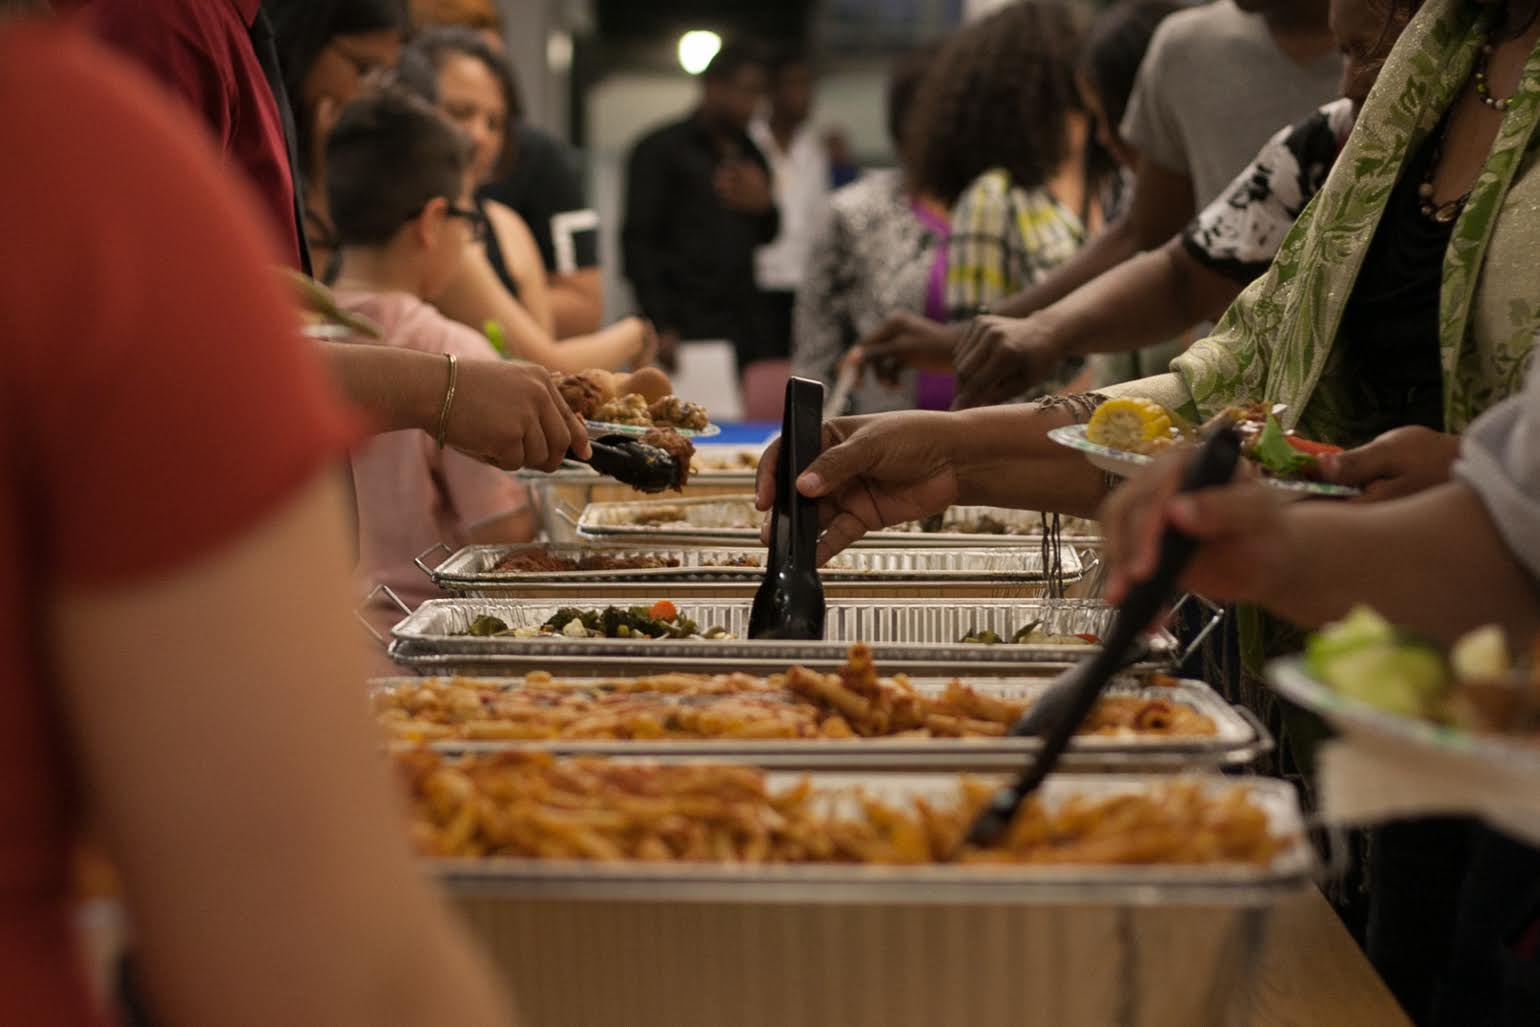 Self-serve catered meal after awards ceremony